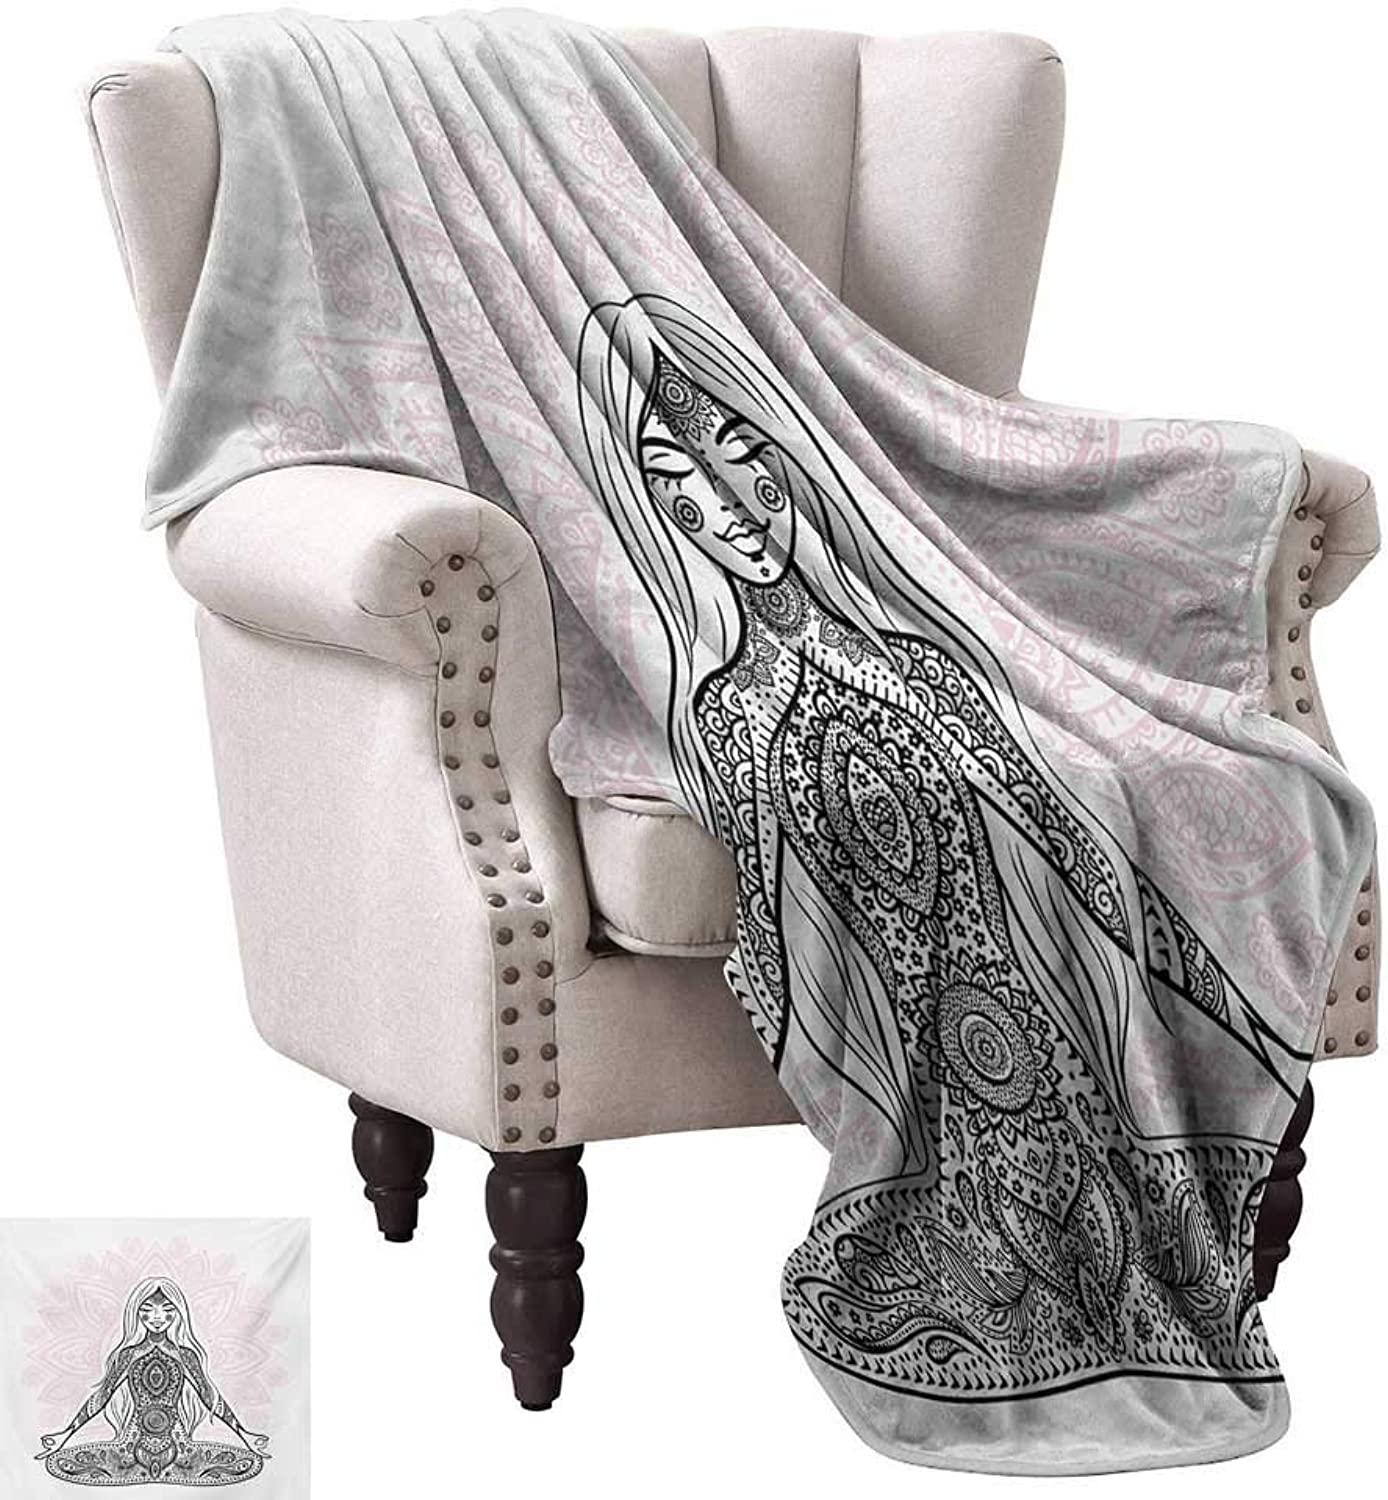 Anyangeight Digital Printing Blanket,Ornate Girl Figure on Lotus Flower with Eastern Symbols on Body Mind Calming Concept 60 x50 ,Super Soft and Comfortable,Suitable for Sofas,Chairs,beds